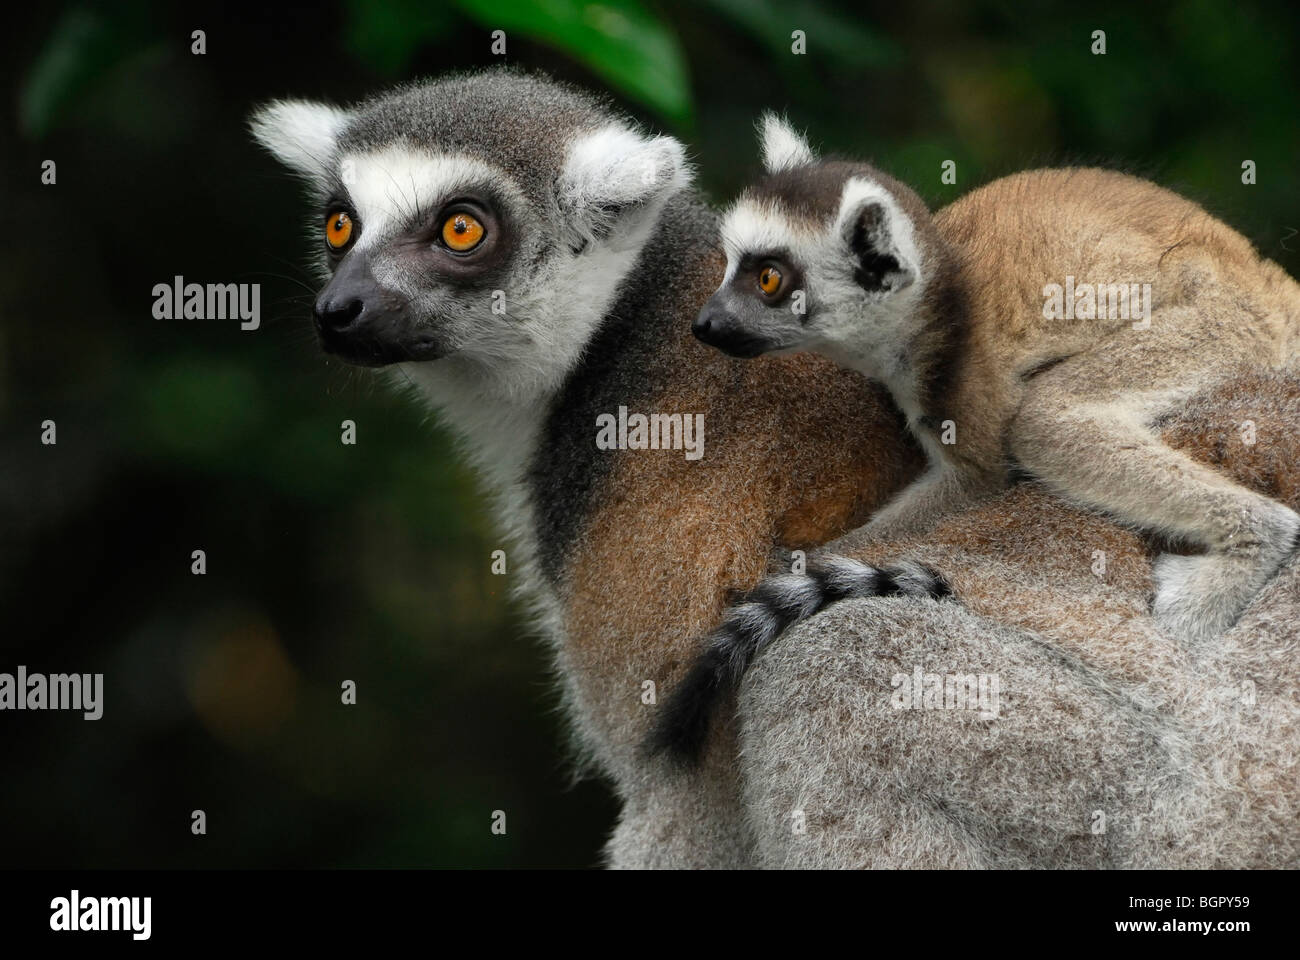 Ring-tailed Lemur (Lemur catta), female with its baby riding on its back, Madagascar - Stock Image